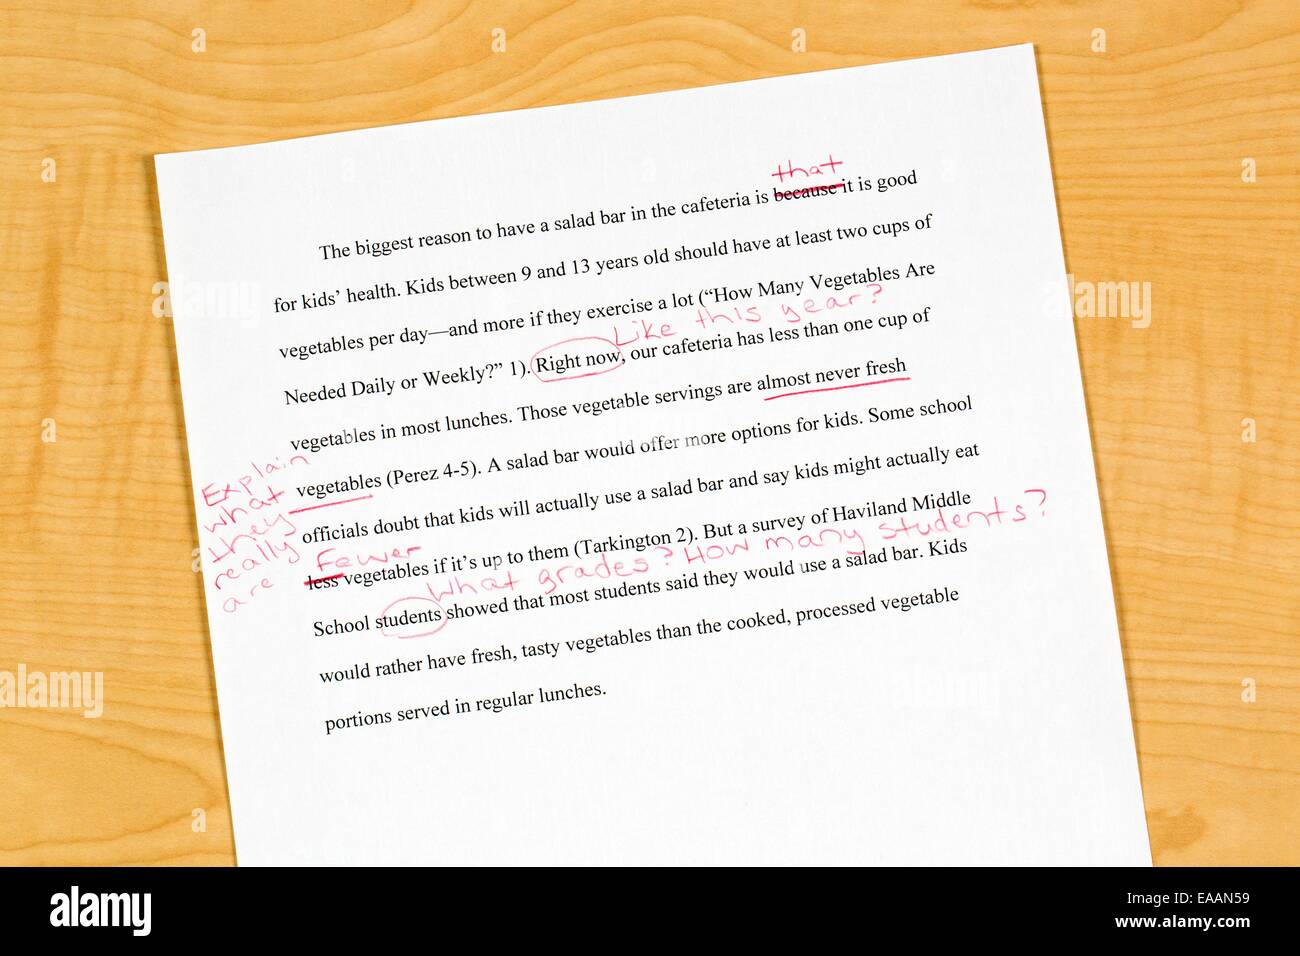 A reviewed draft of a school research paper with critical remarks and suggestions for improvement - Stock Image